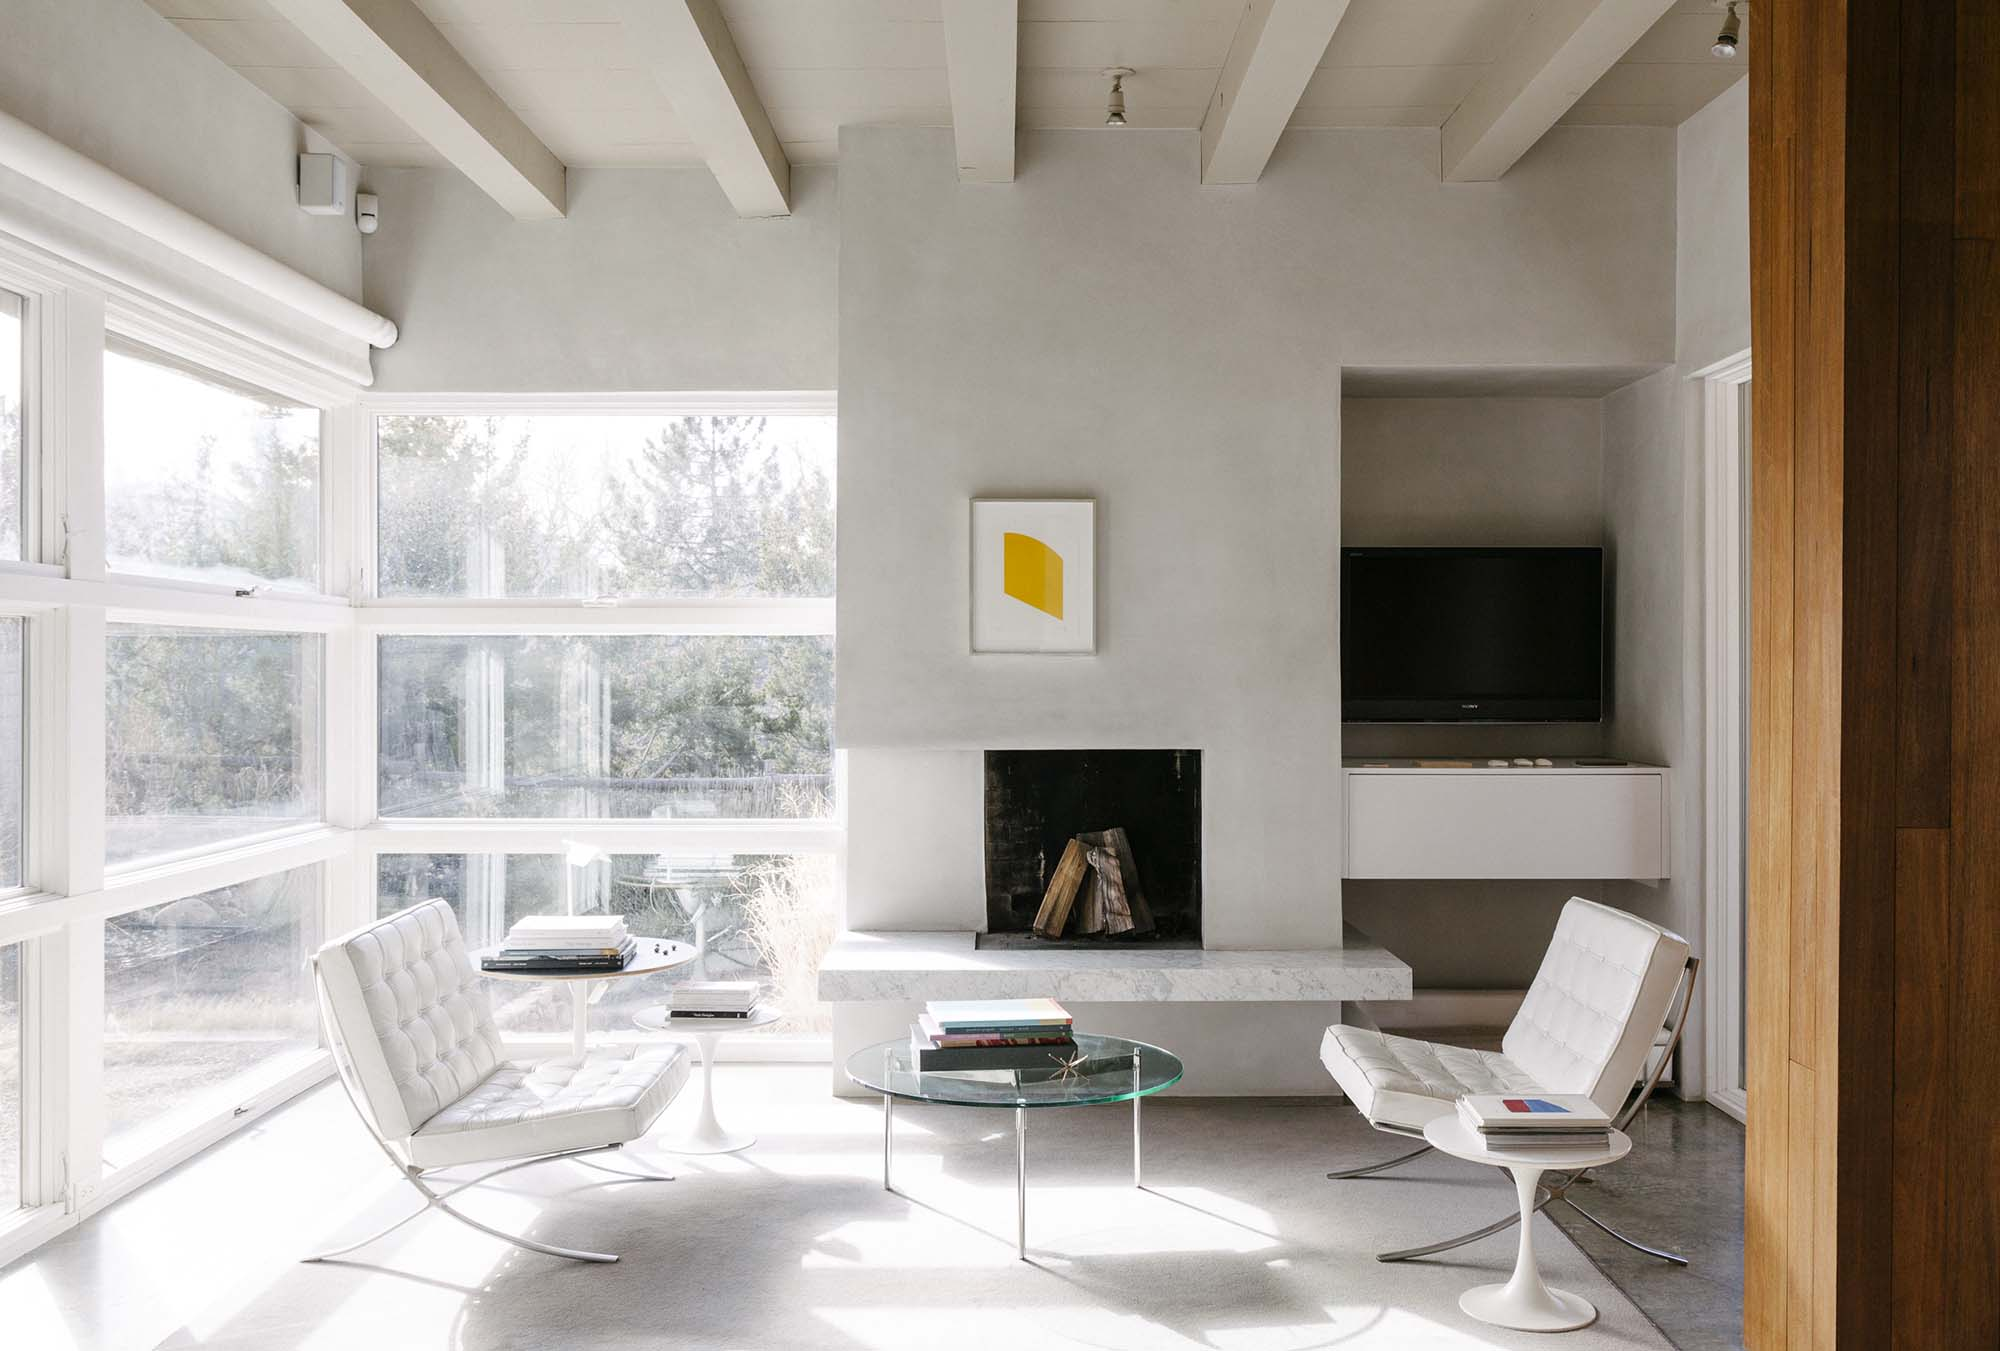 Home To An Architect And A Publisher Of Art Books, This Santa Fe Residence  Is A Structure Built Of Stucco And Glass, Its Interiors Shot Through With  The Dry ...